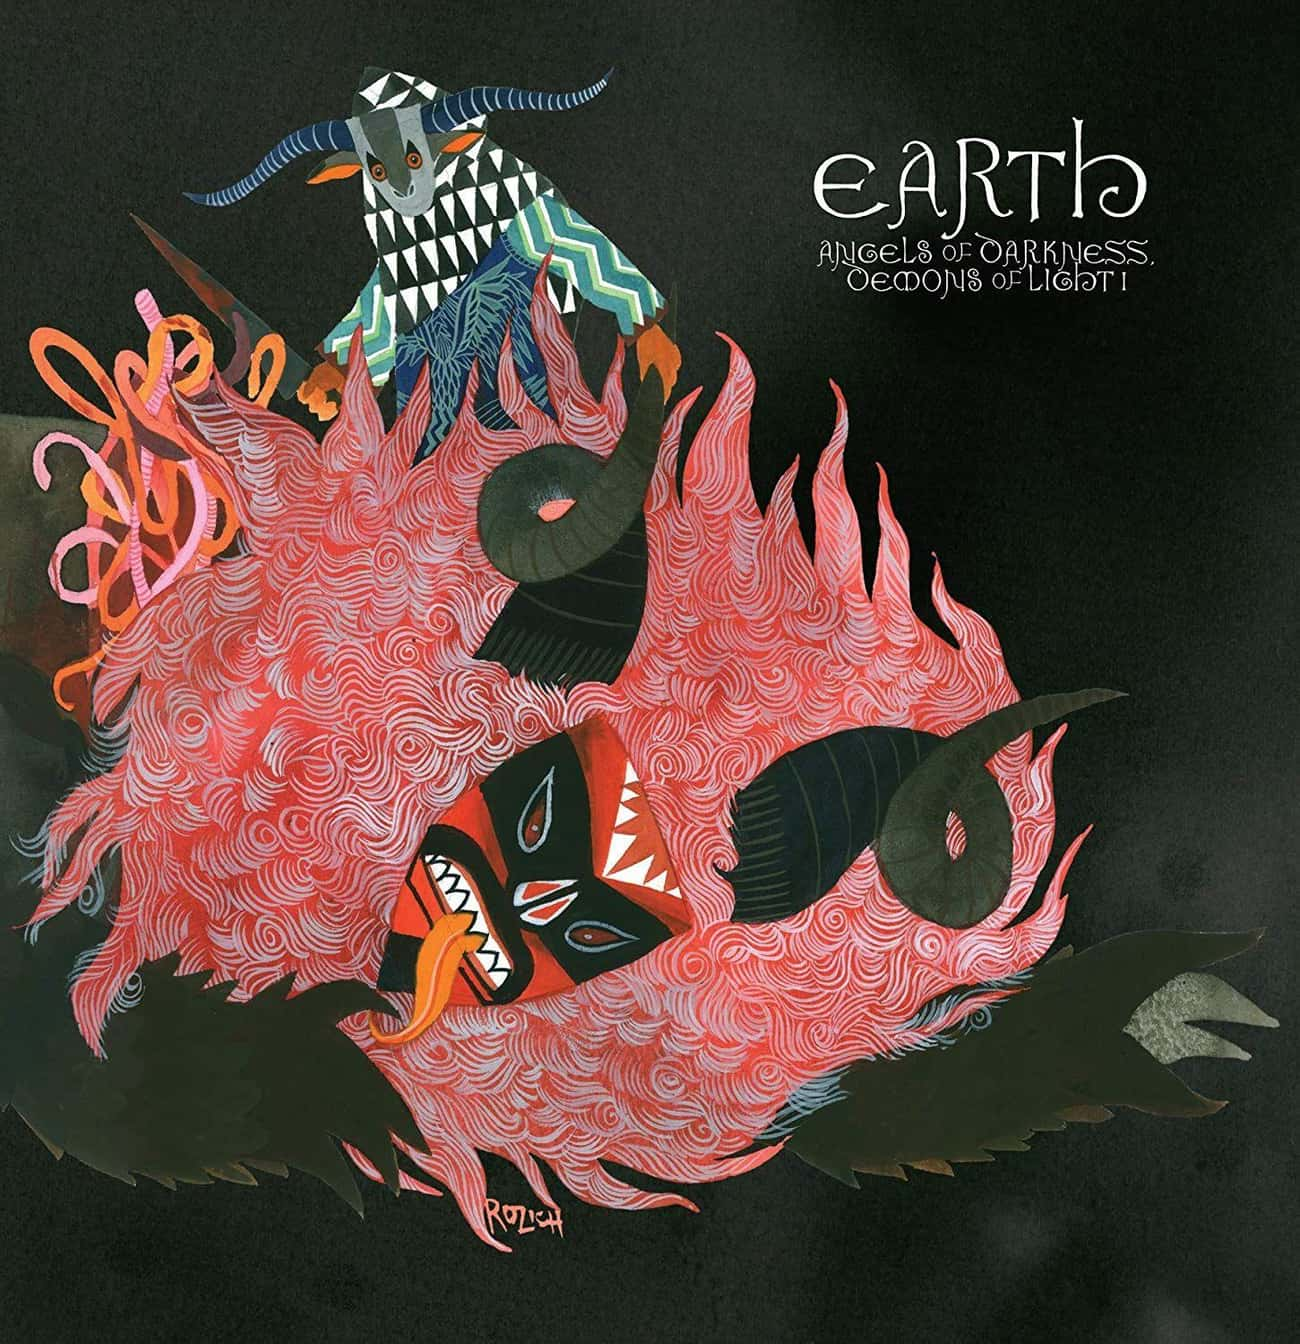 Angels of Darkness, Demons of  is listed (or ranked) 3 on the list The Best Earth Albums, Ranked